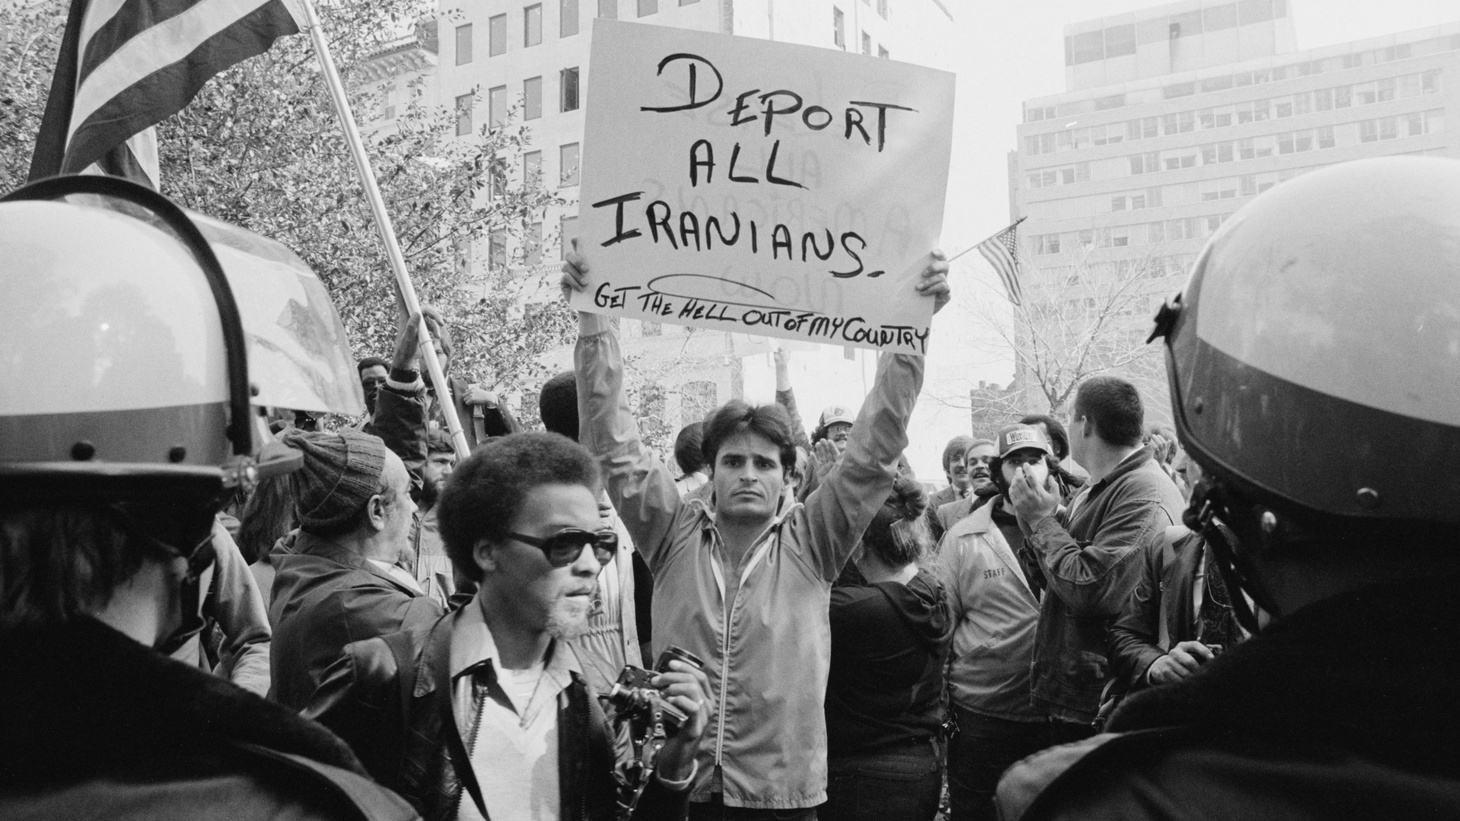 An anti-Iranian protest in Washington, D.C., in 1979.